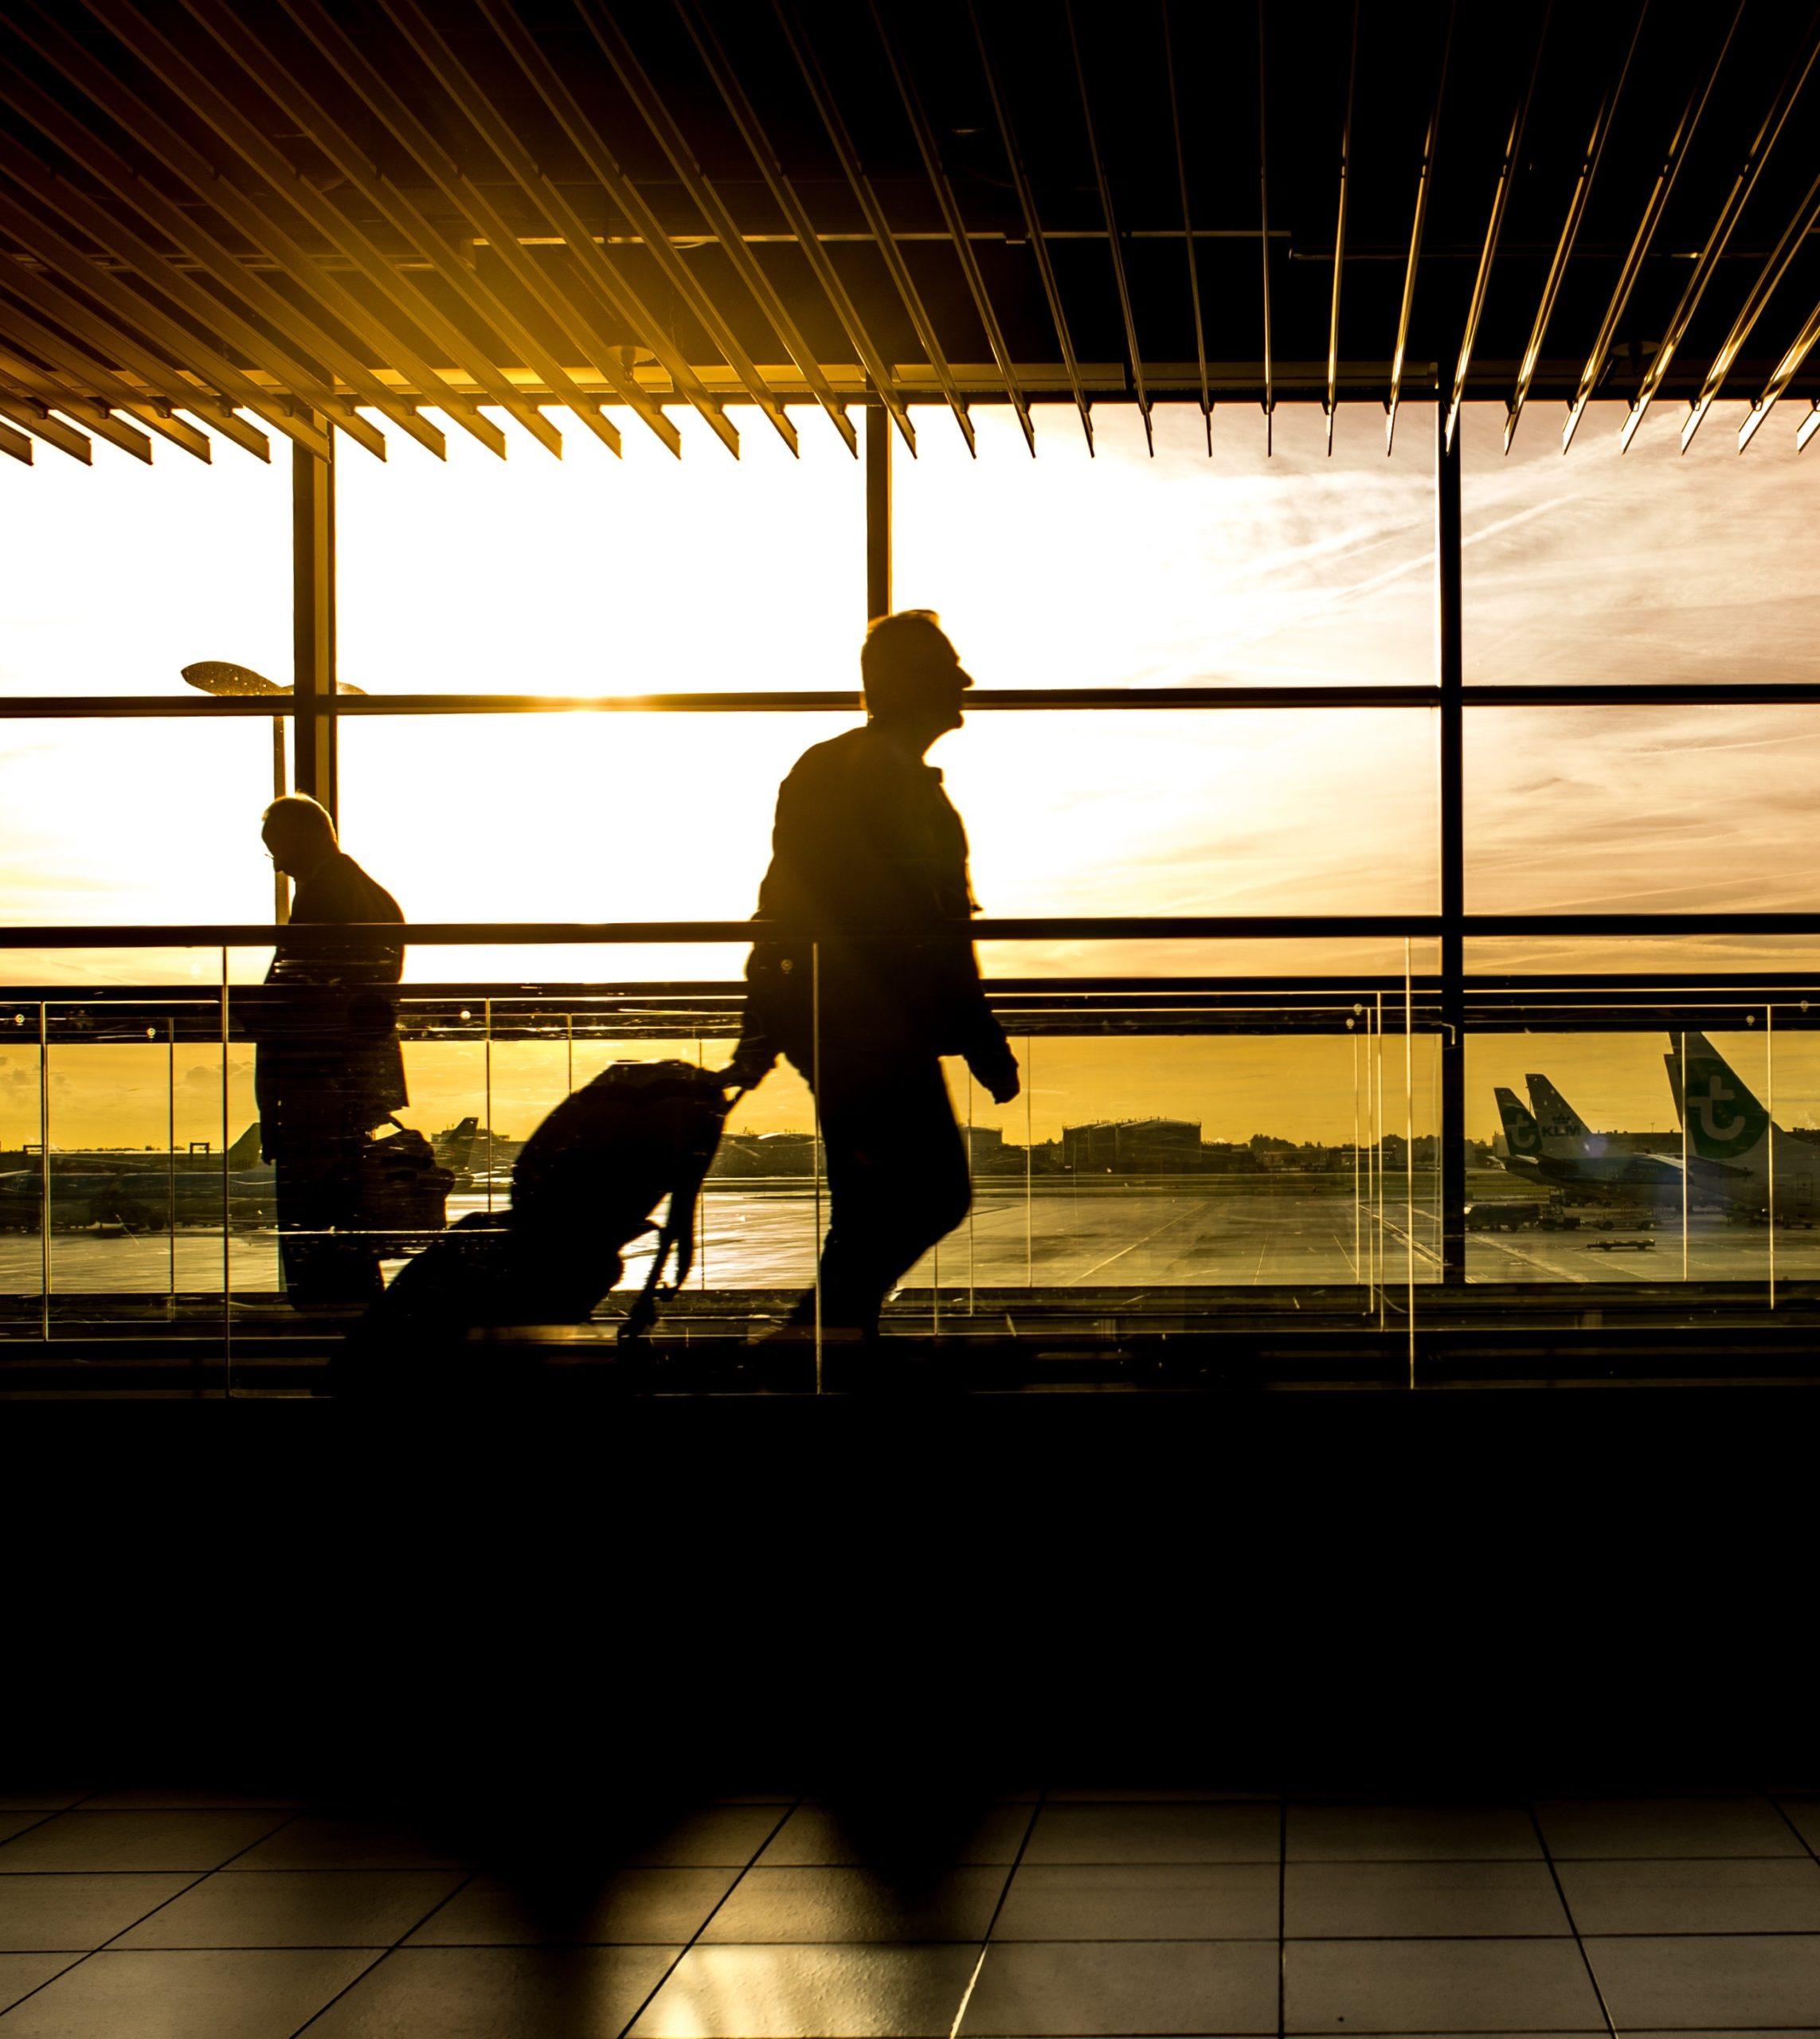 https://www.pexels.com/photo/silhouette-of-person-in-airport-227690/